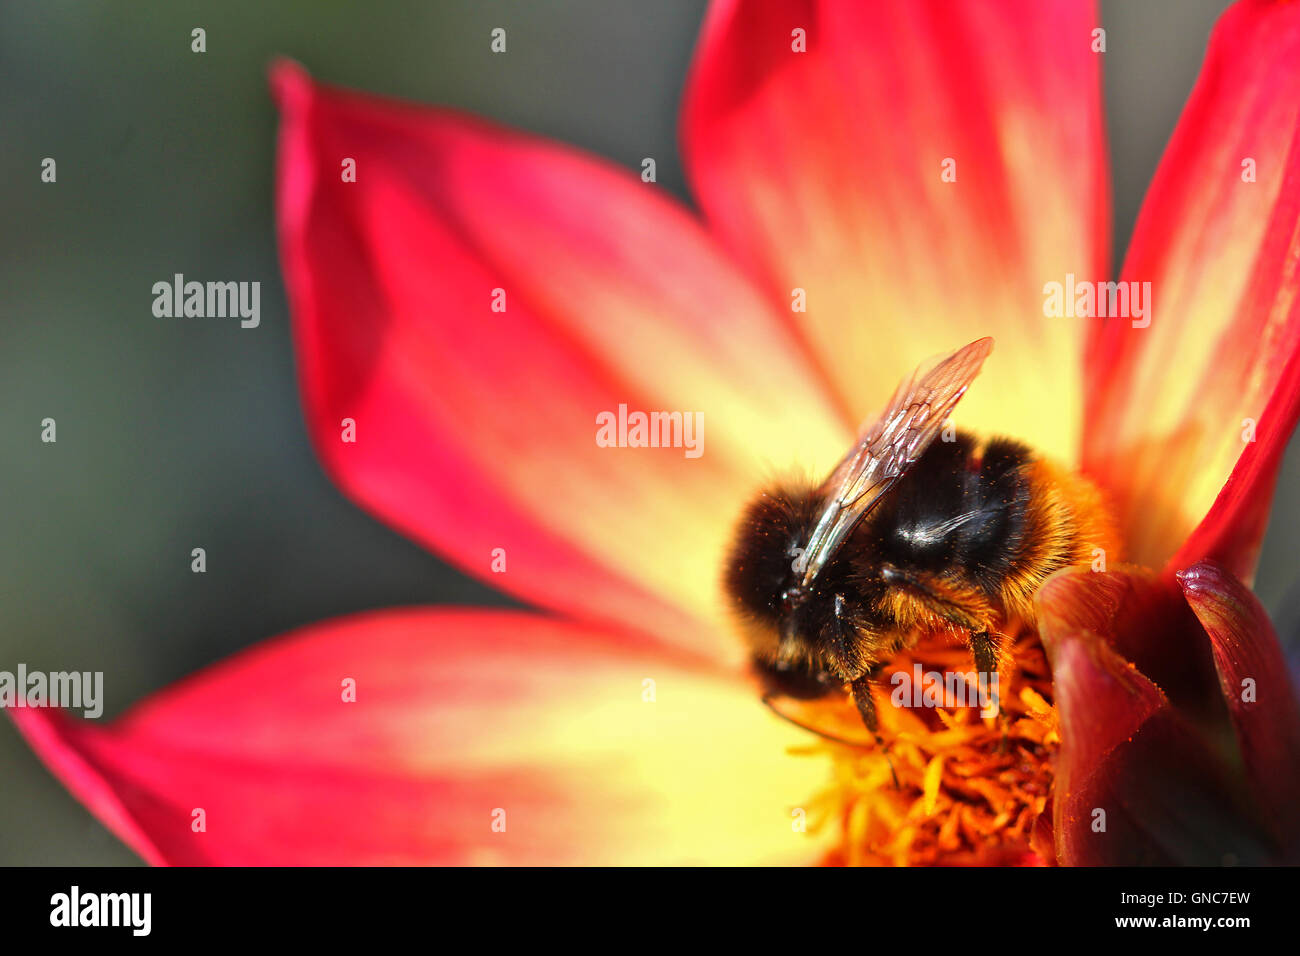 Close up of a bee on a flower - Stock Image